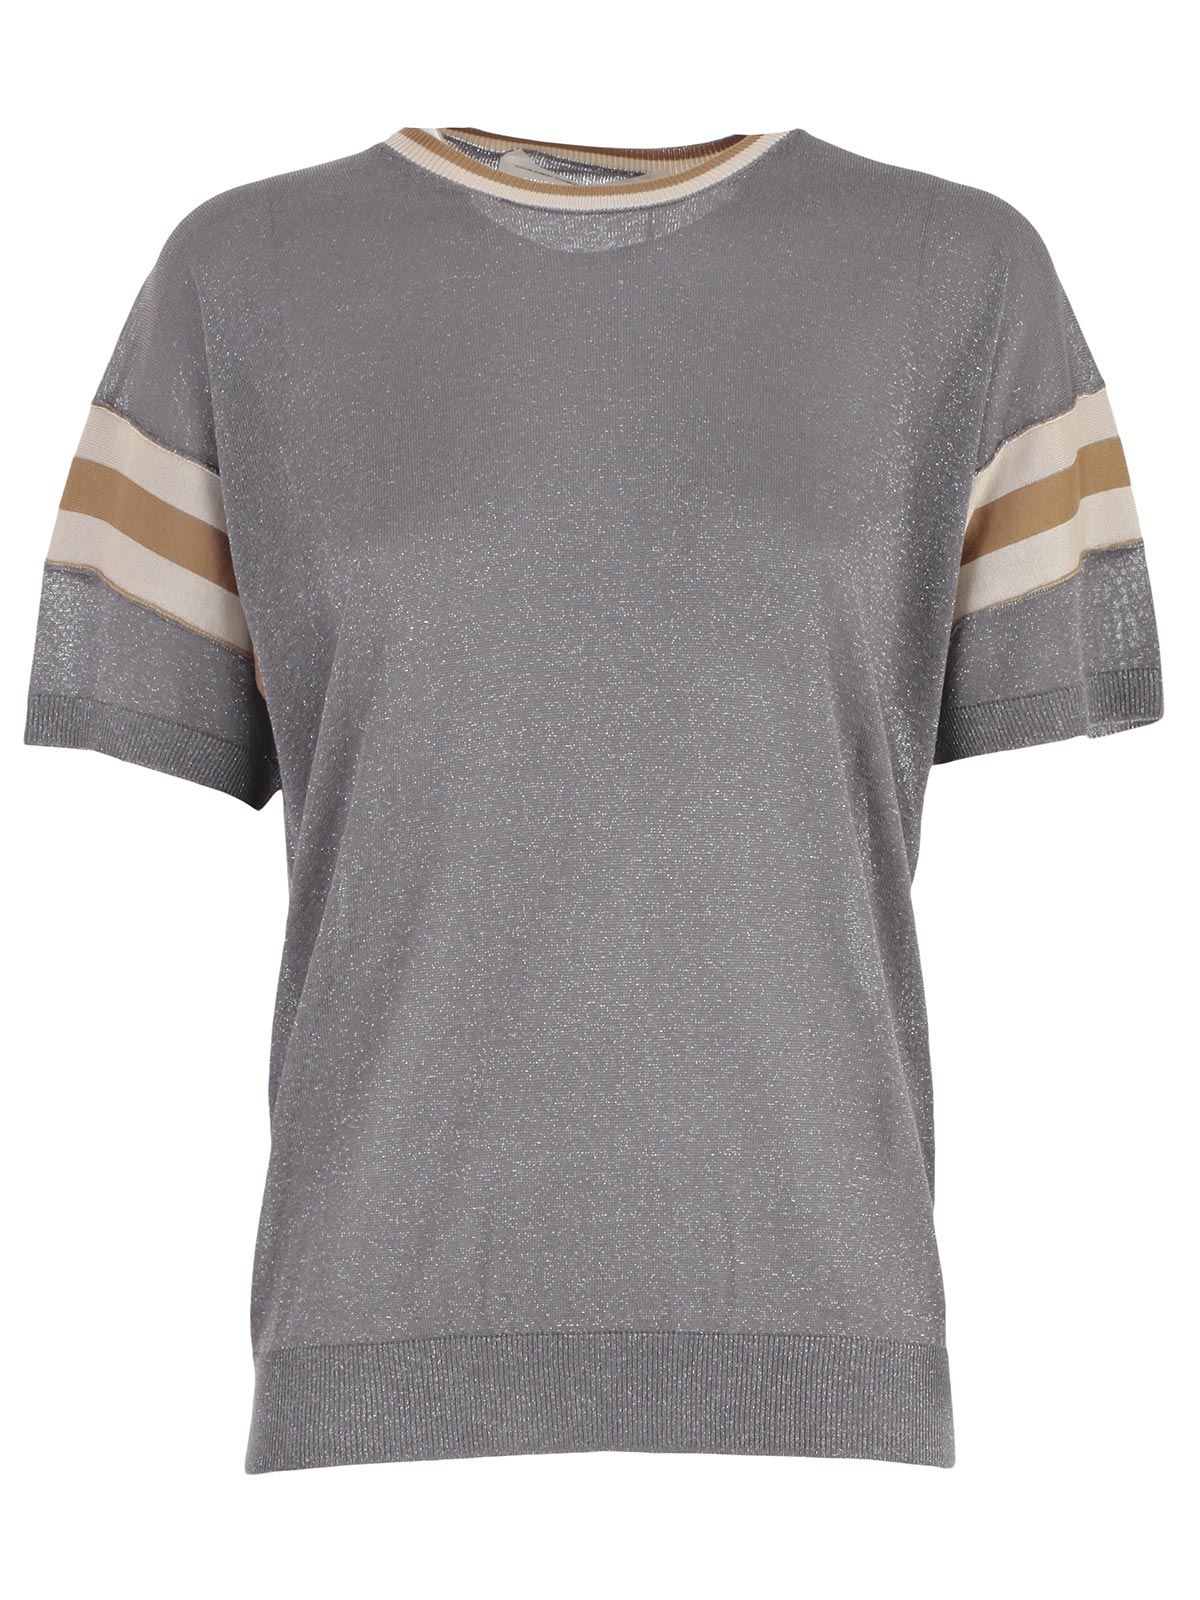 Picture of GOLDEN GOOSE DELUXE BRAND JERSEY